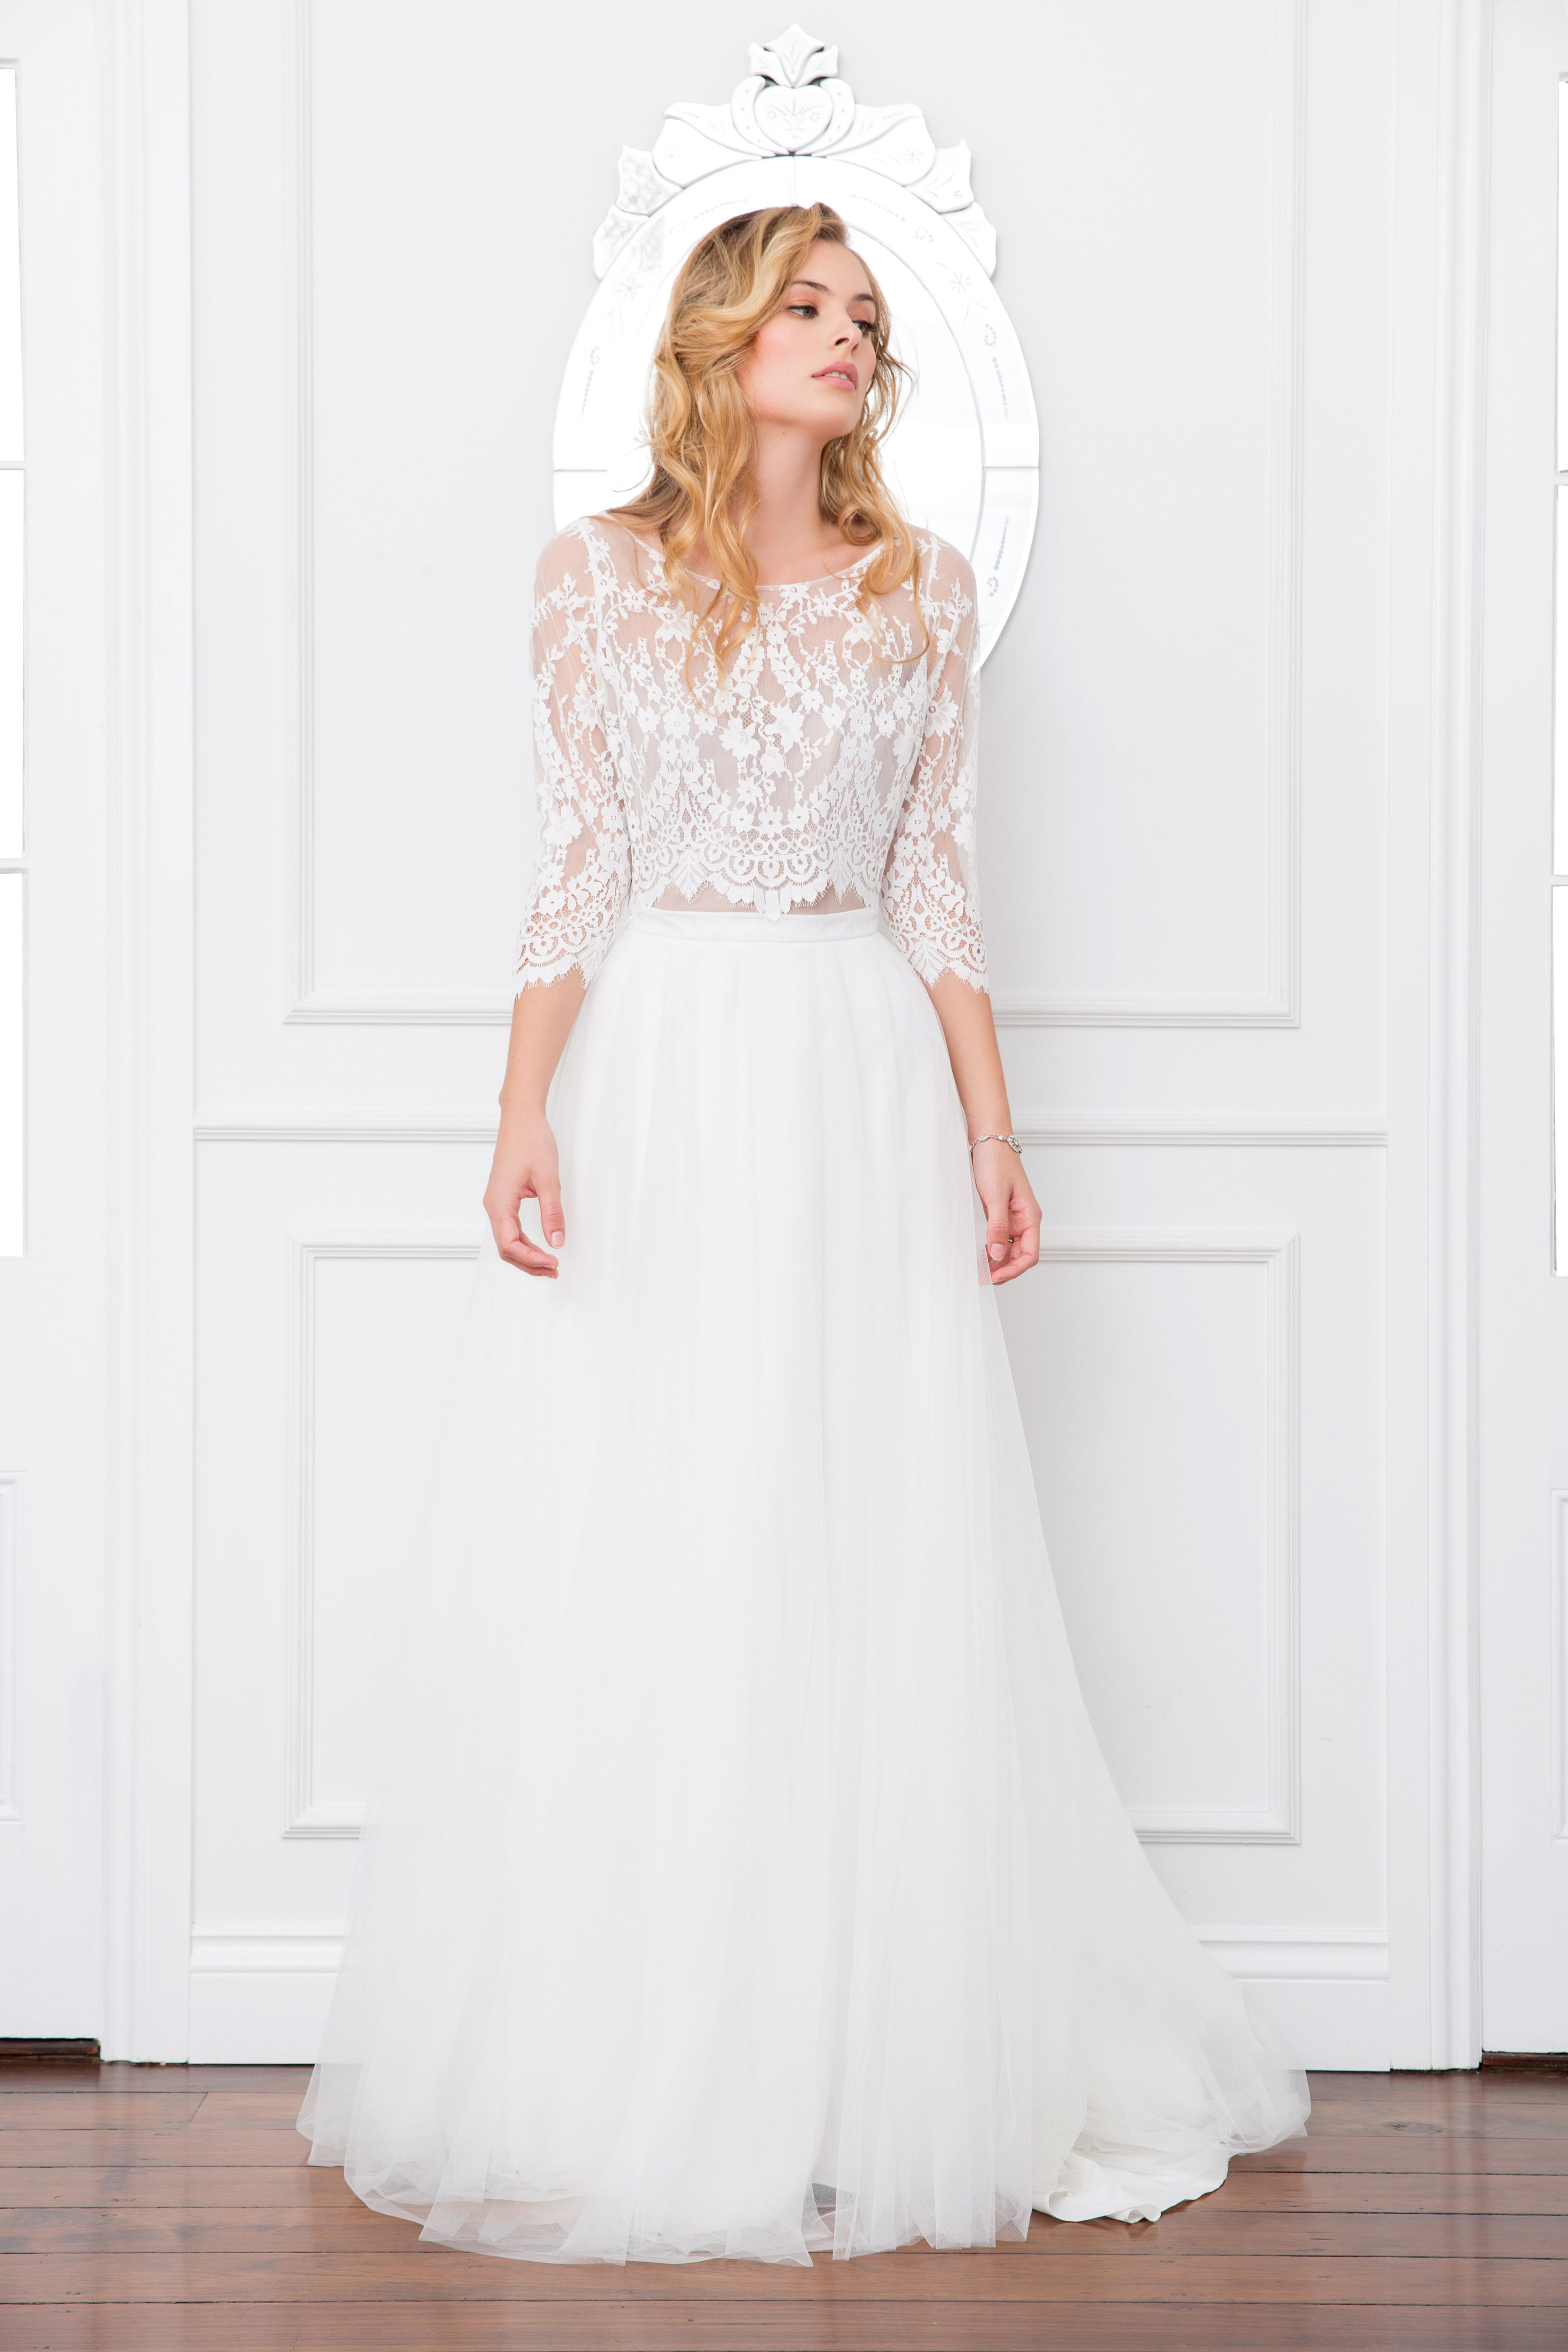 Samara Bodice And Lilah Skirt Lace Top Bridal Separates Long Sleeve Tulle Skirt Wedding Wedding Dress Separates Tulle Wedding Skirt Lace Top Wedding